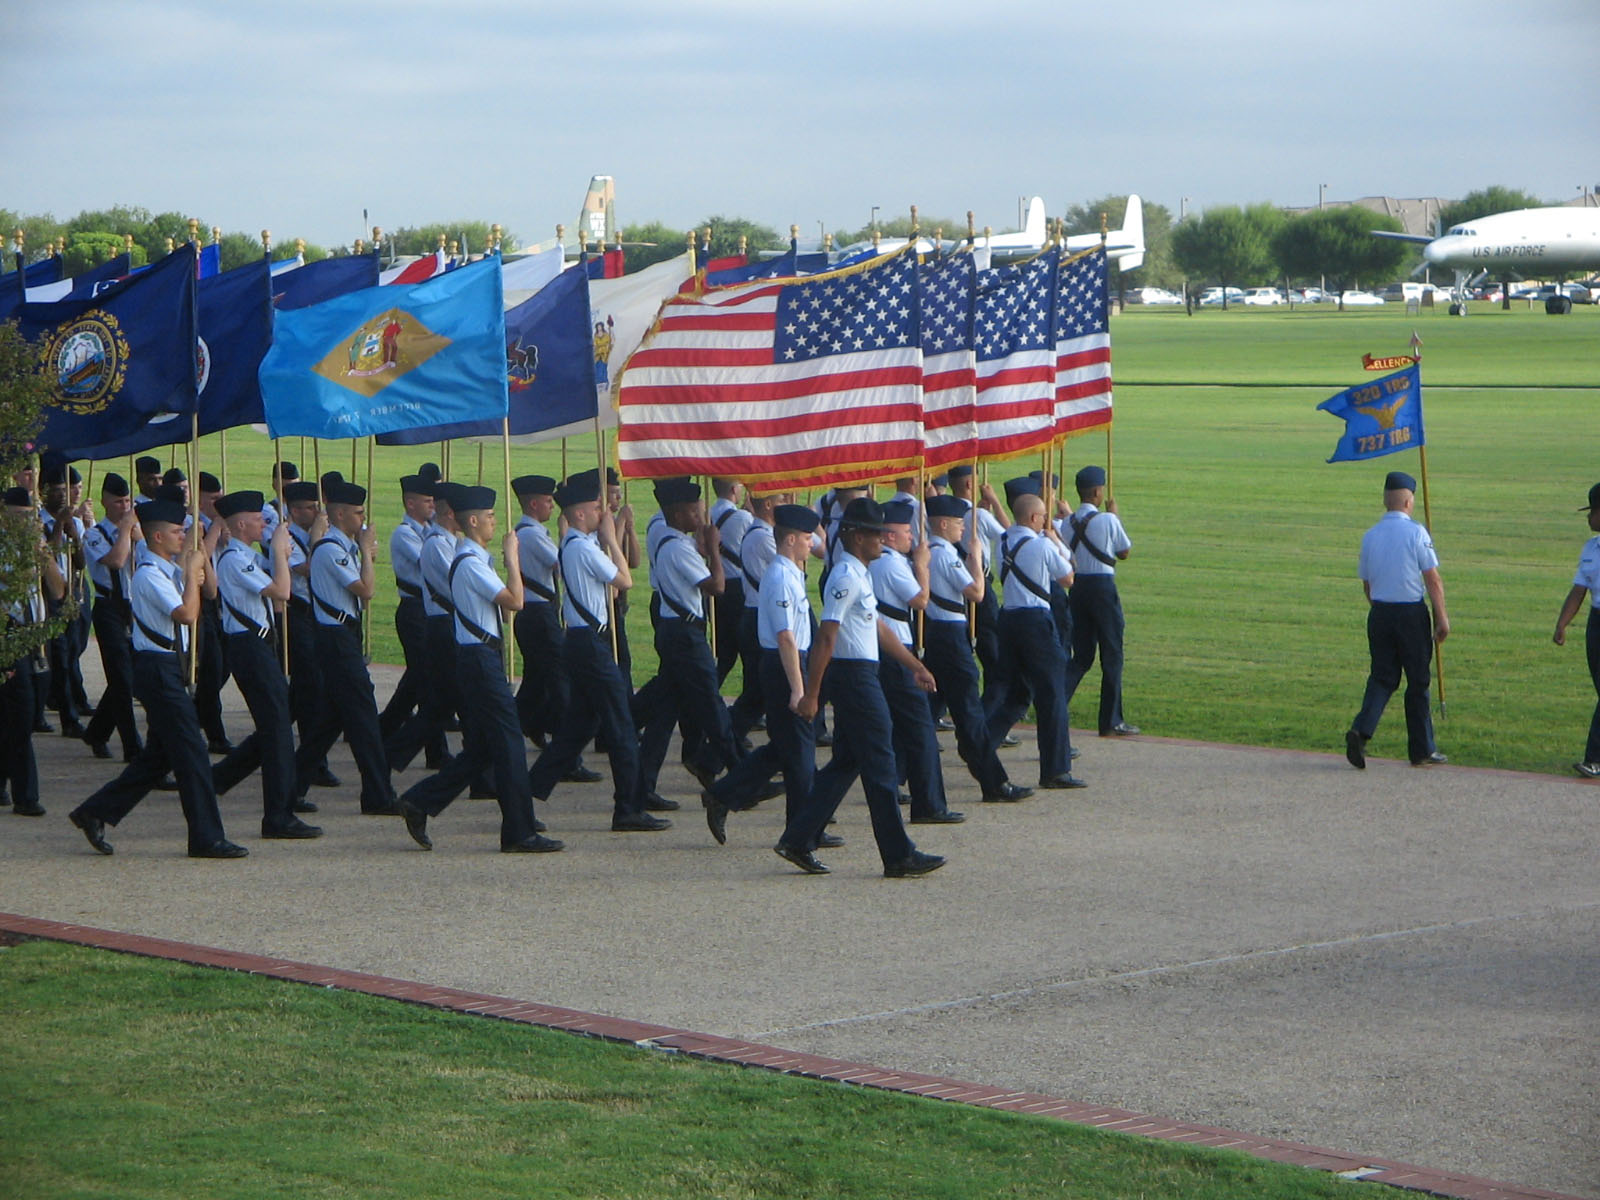 United States Air Force Basic Military Training